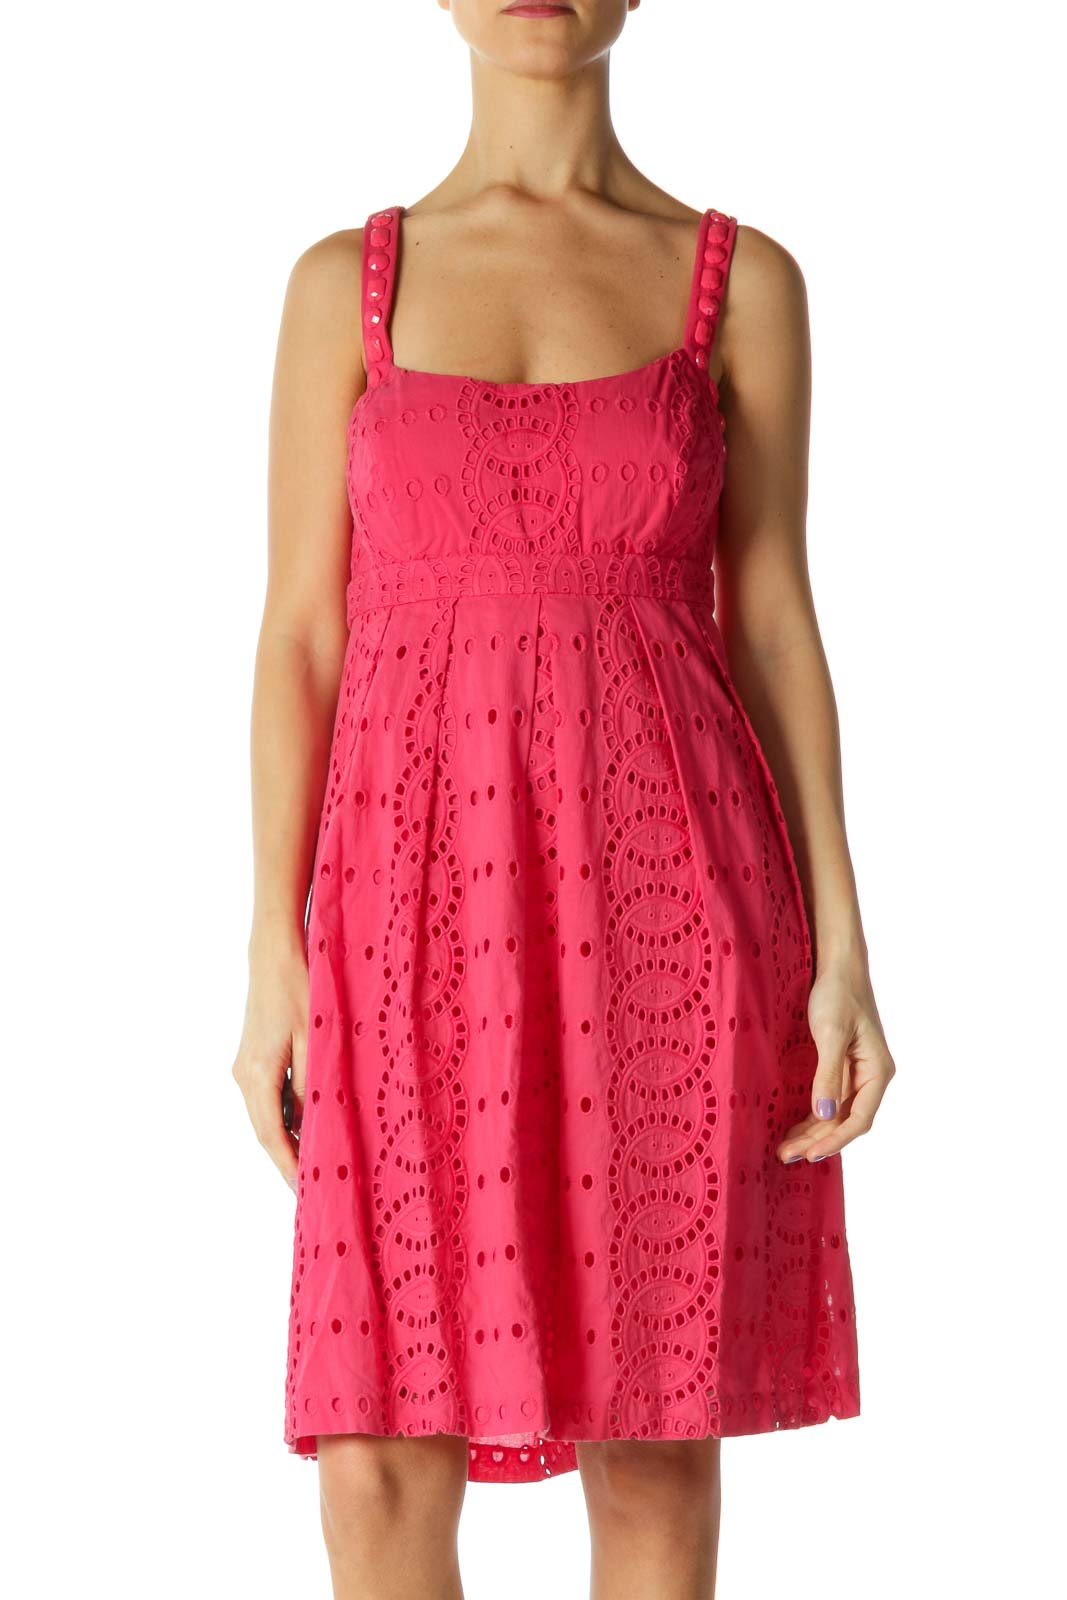 Pink Lace Casual A-Line Dress